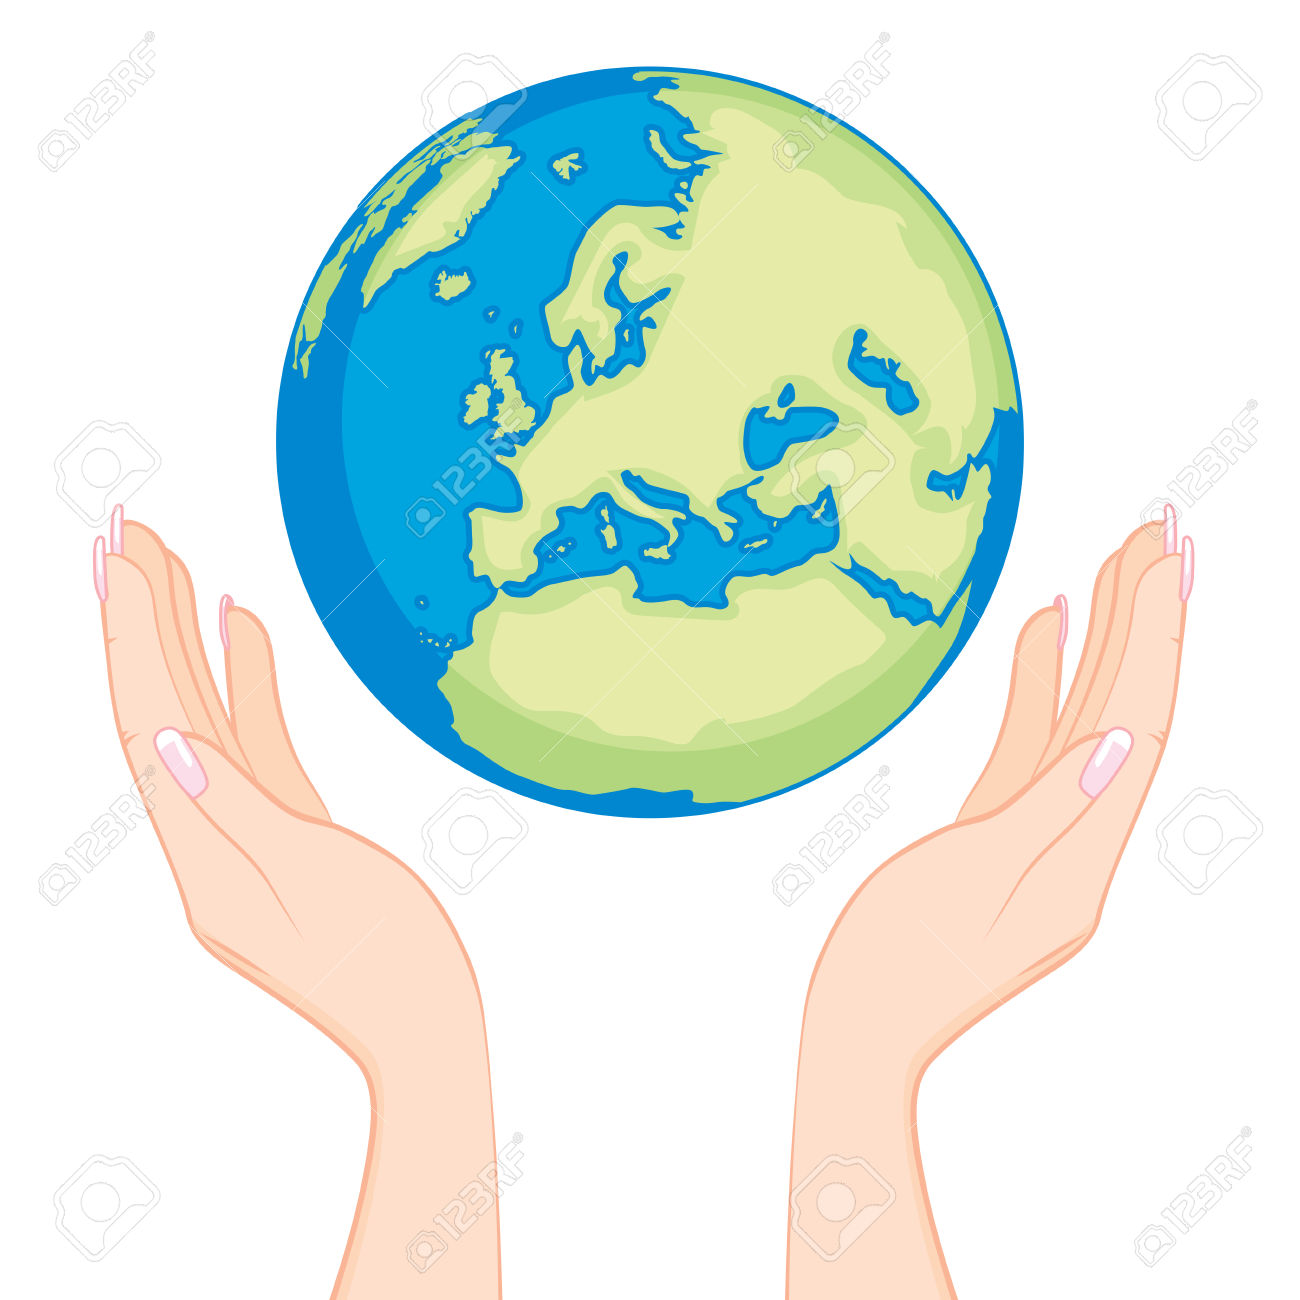 1300x1300 Globe Clipart Hand Holding